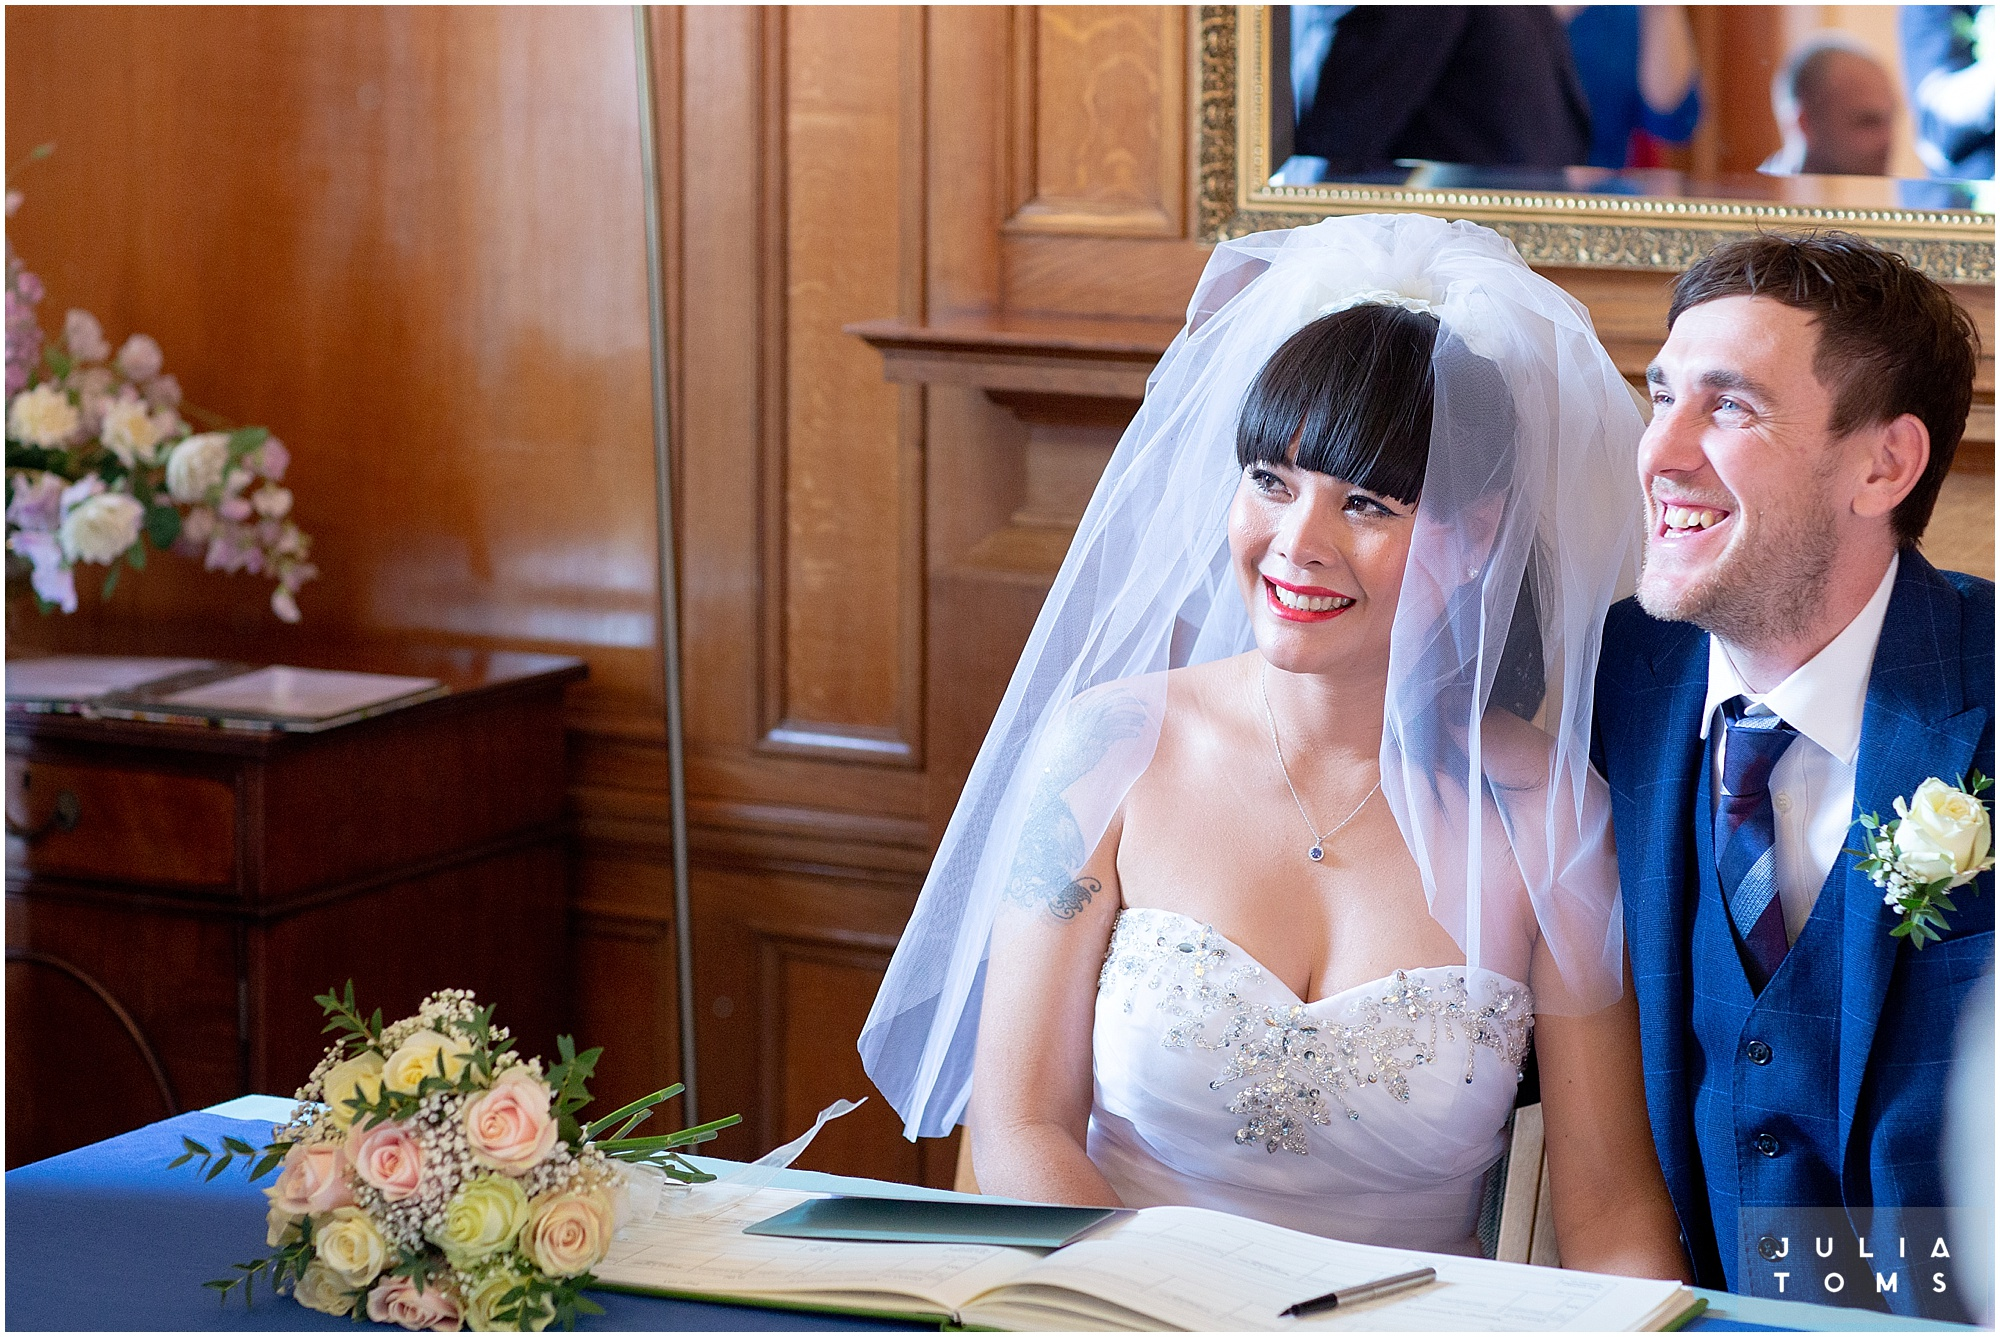 chichester_wedding_photographer_juliatoms_001.jpg